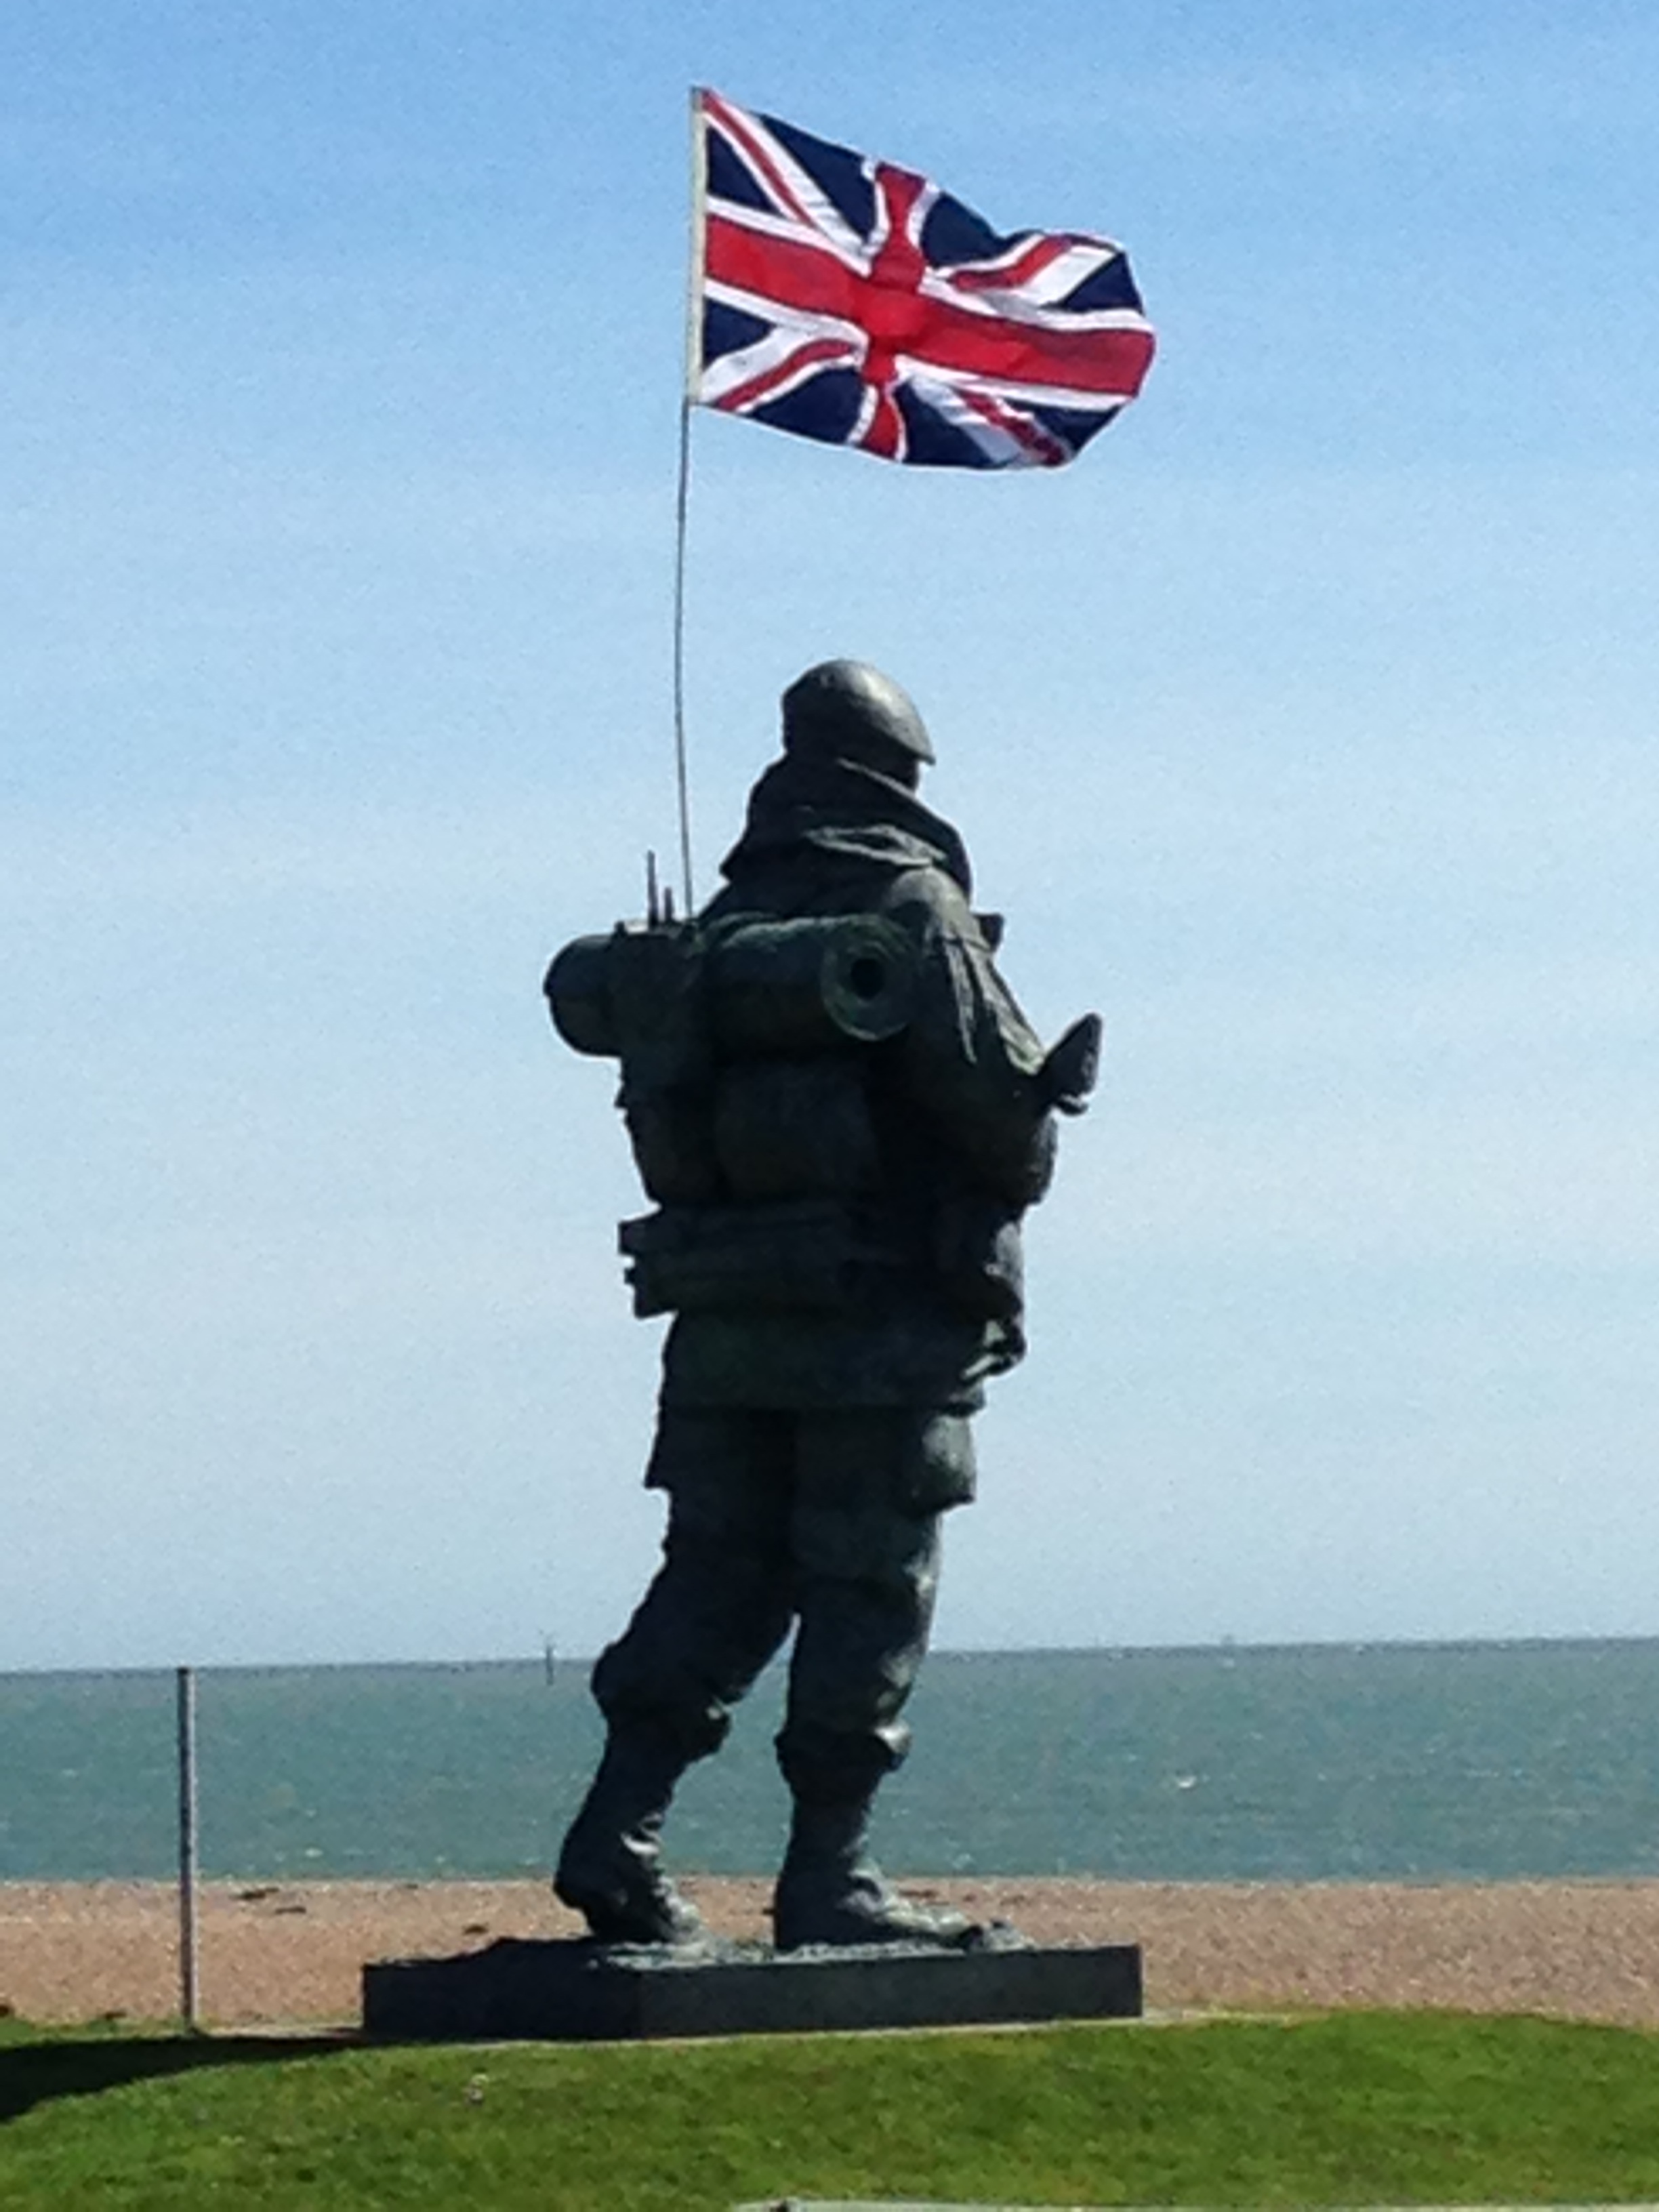 """The """"Yomper"""" in Eastney outside the old Royal Marine barracks in Portsmouth.  Once the home of the Royal Marines Museum until April 2017, I see this guy on a fairly regular basis on visits to the archives of the Royal Marines. I took this picture last summer on my way home from one of my visits there.  He commemorates the Royal Marines actions in the 1982 Falklands War, but for the people of Portsmouth he is a reminder of the link the city has to this military branch of the Royal Navy."""